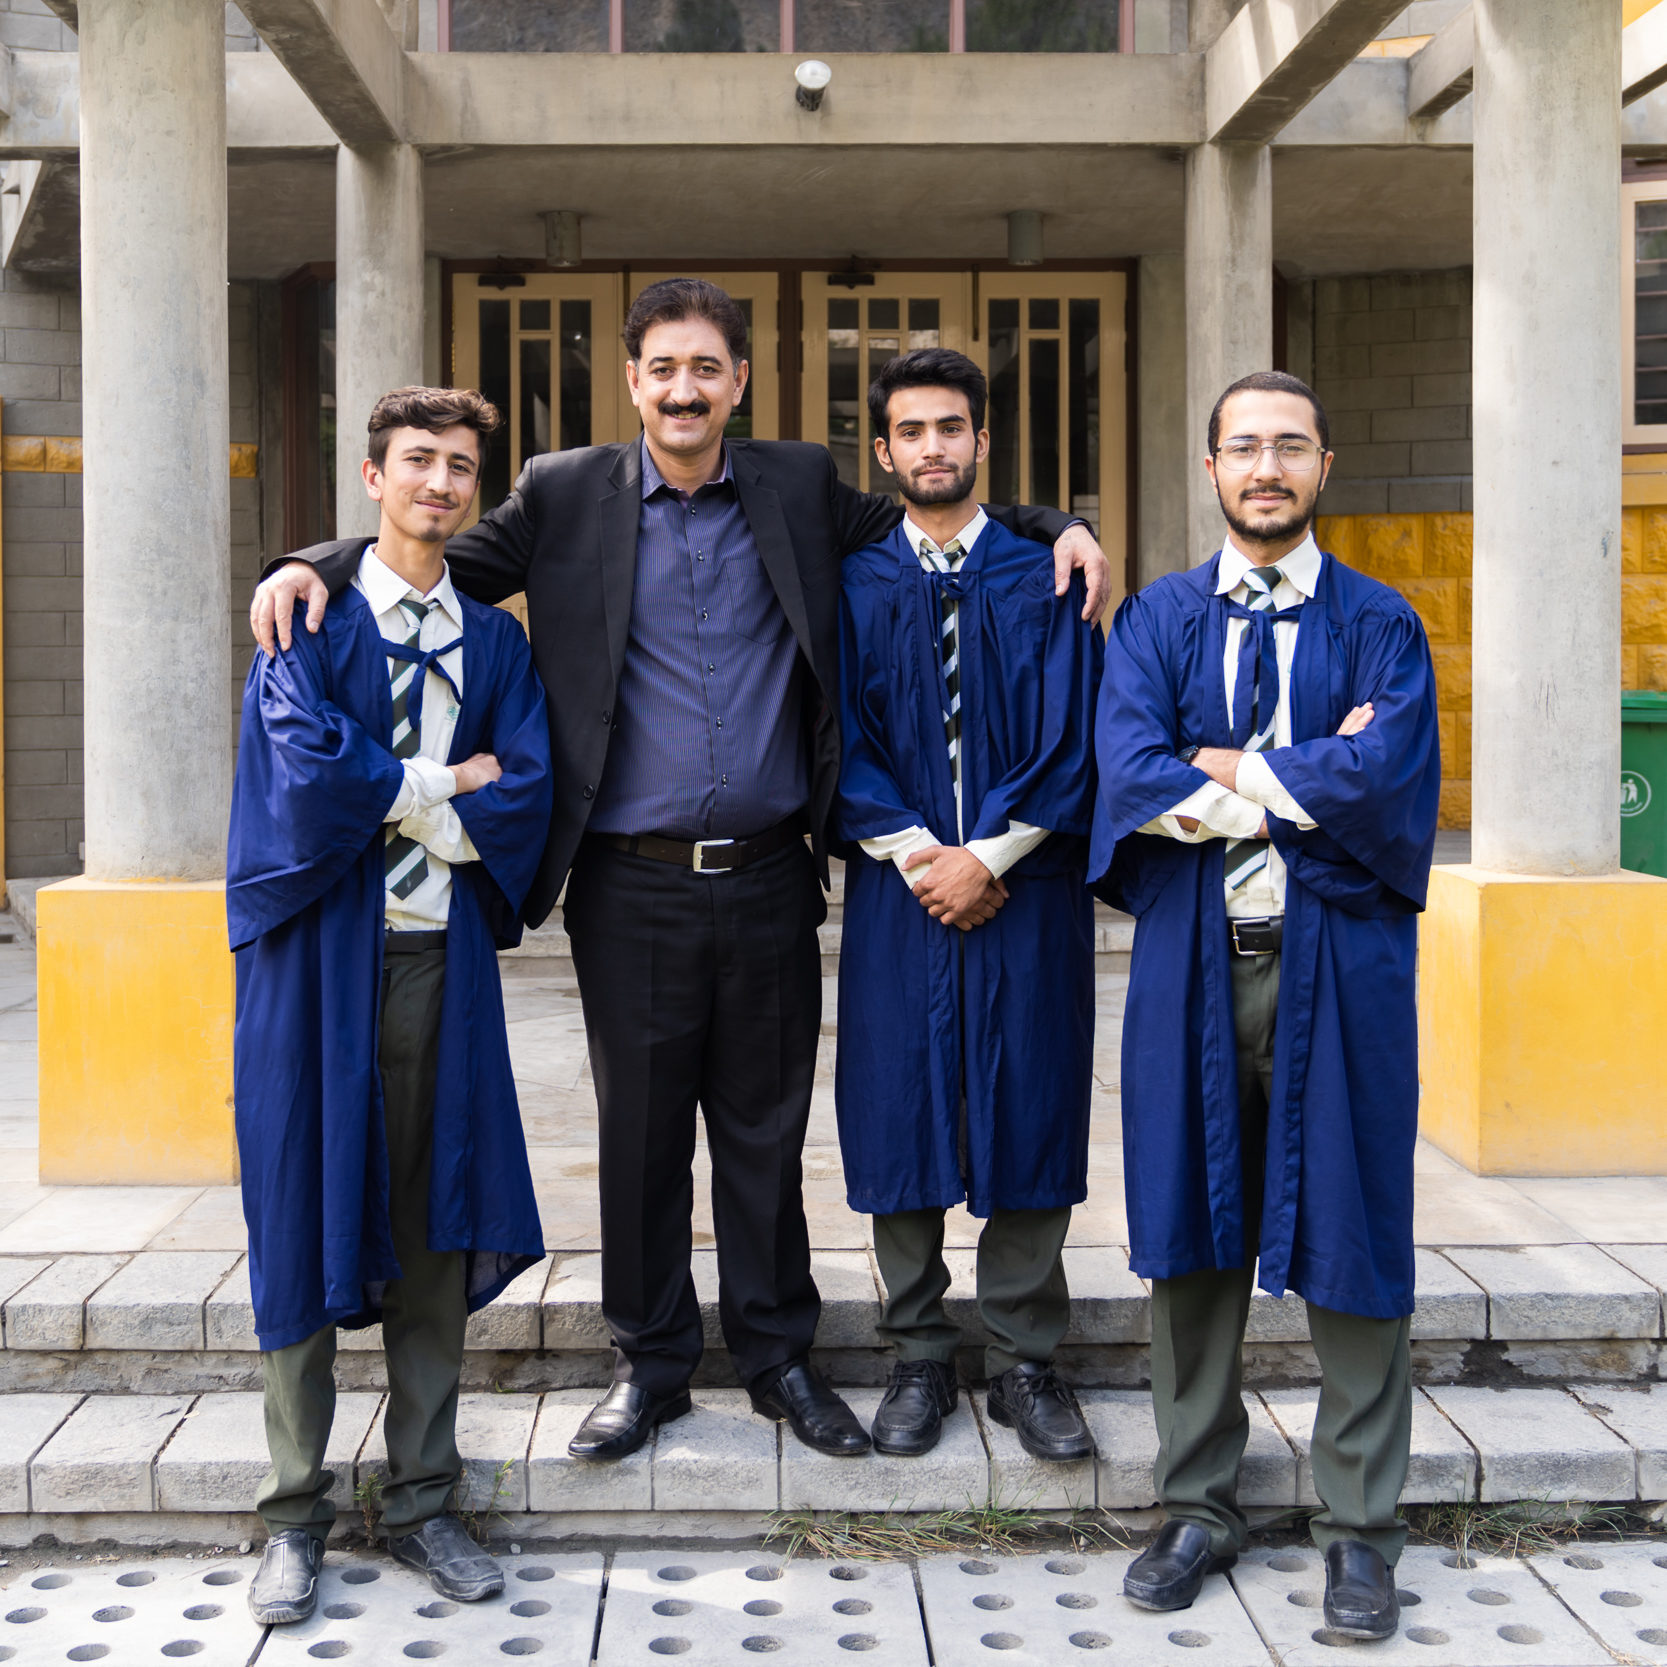 three young men wearing graduation gowns stand with a teacher outside a modern school building